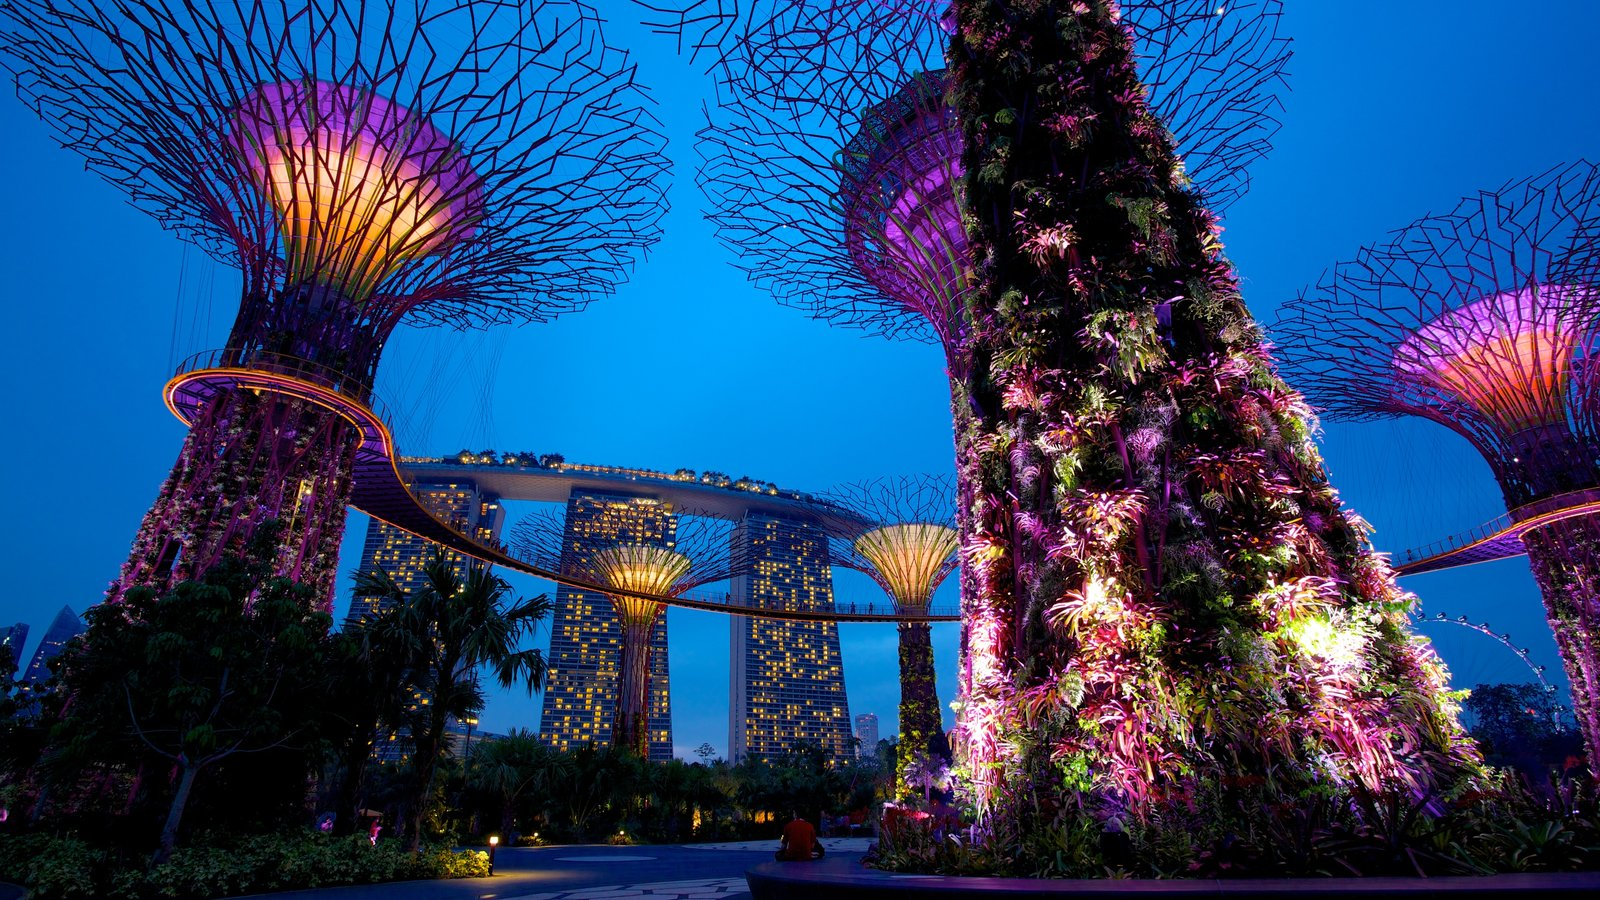 Garden By The Bay Night gardens & parks pictures: view images of gardensthe bay